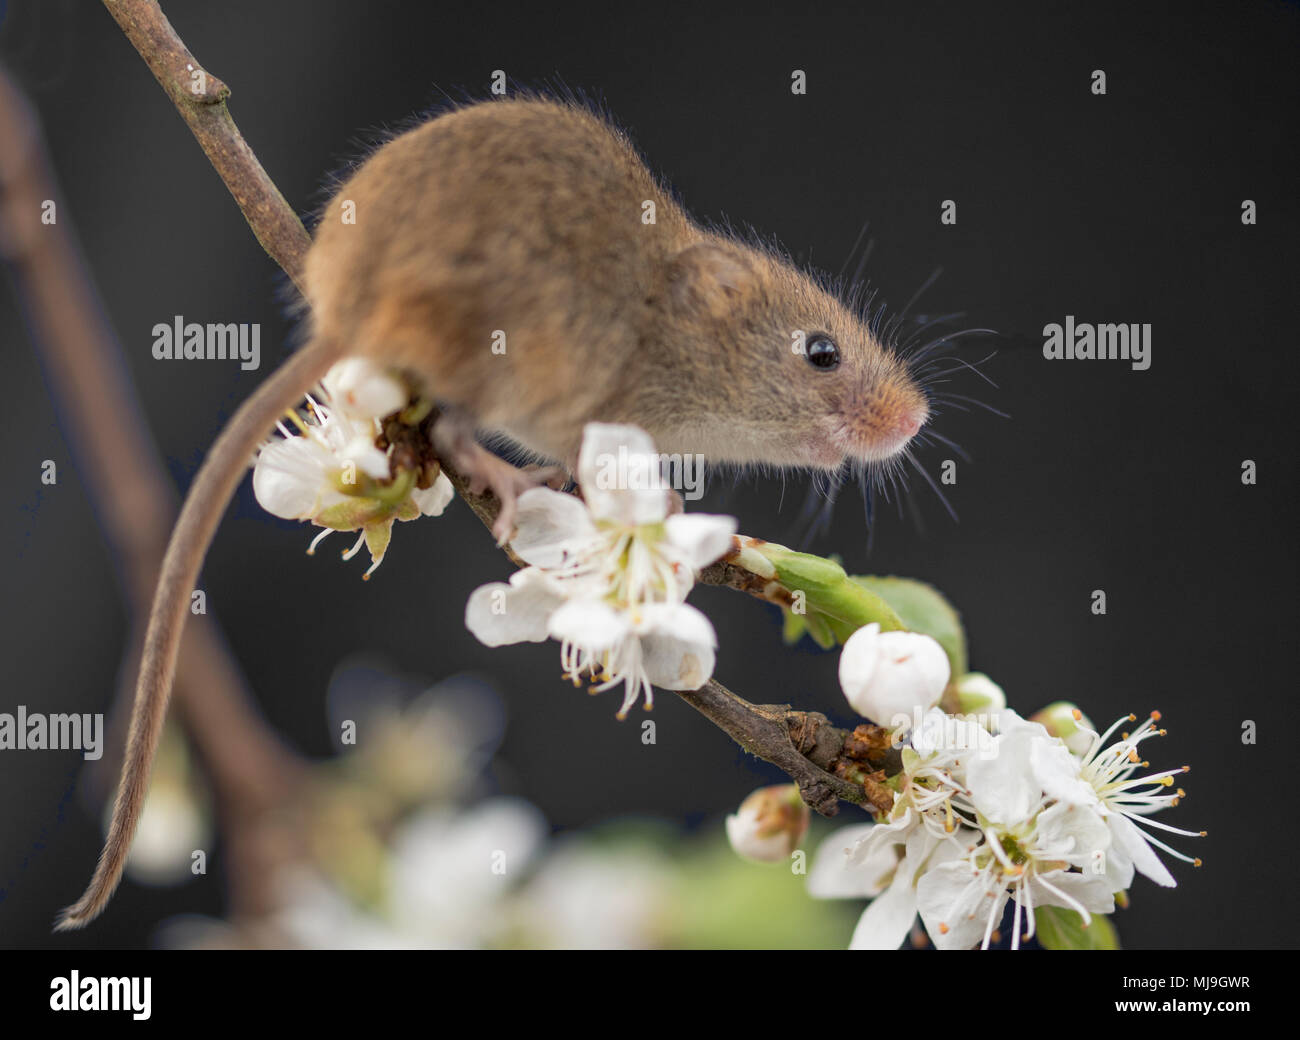 Cute little harvest mouse on spring blossom - Stock Image